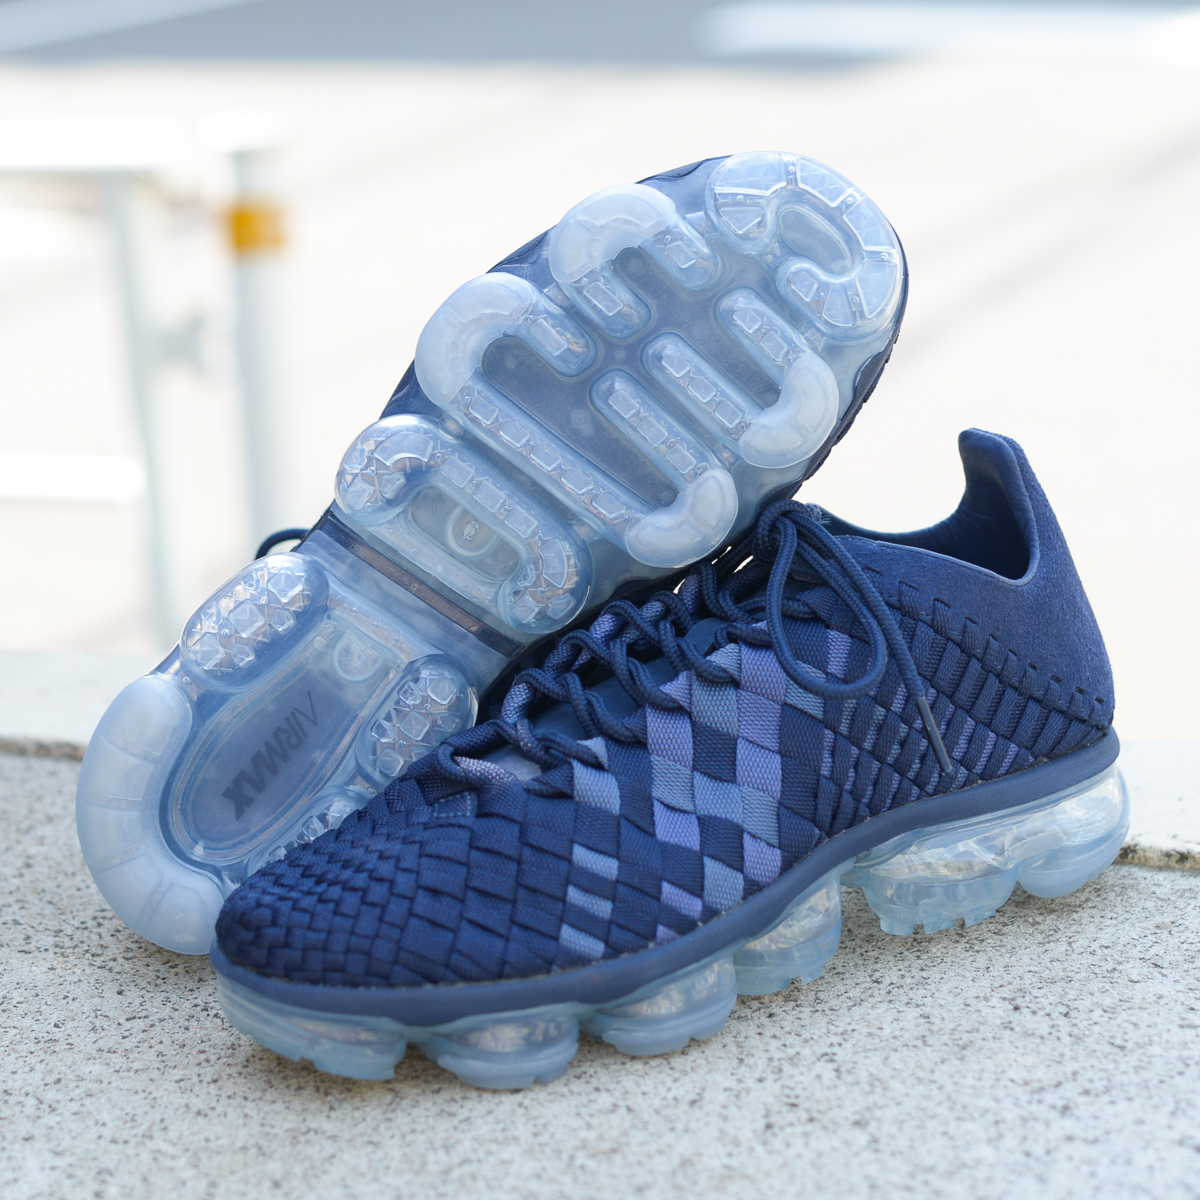 6cddaeeef63af NIKE AIR VAPORMAX INNEVA (Nike vapor Mac Sui Neva) (MIDNIGHT NAVY MIDNIGHT  NAVY) 18SU-S